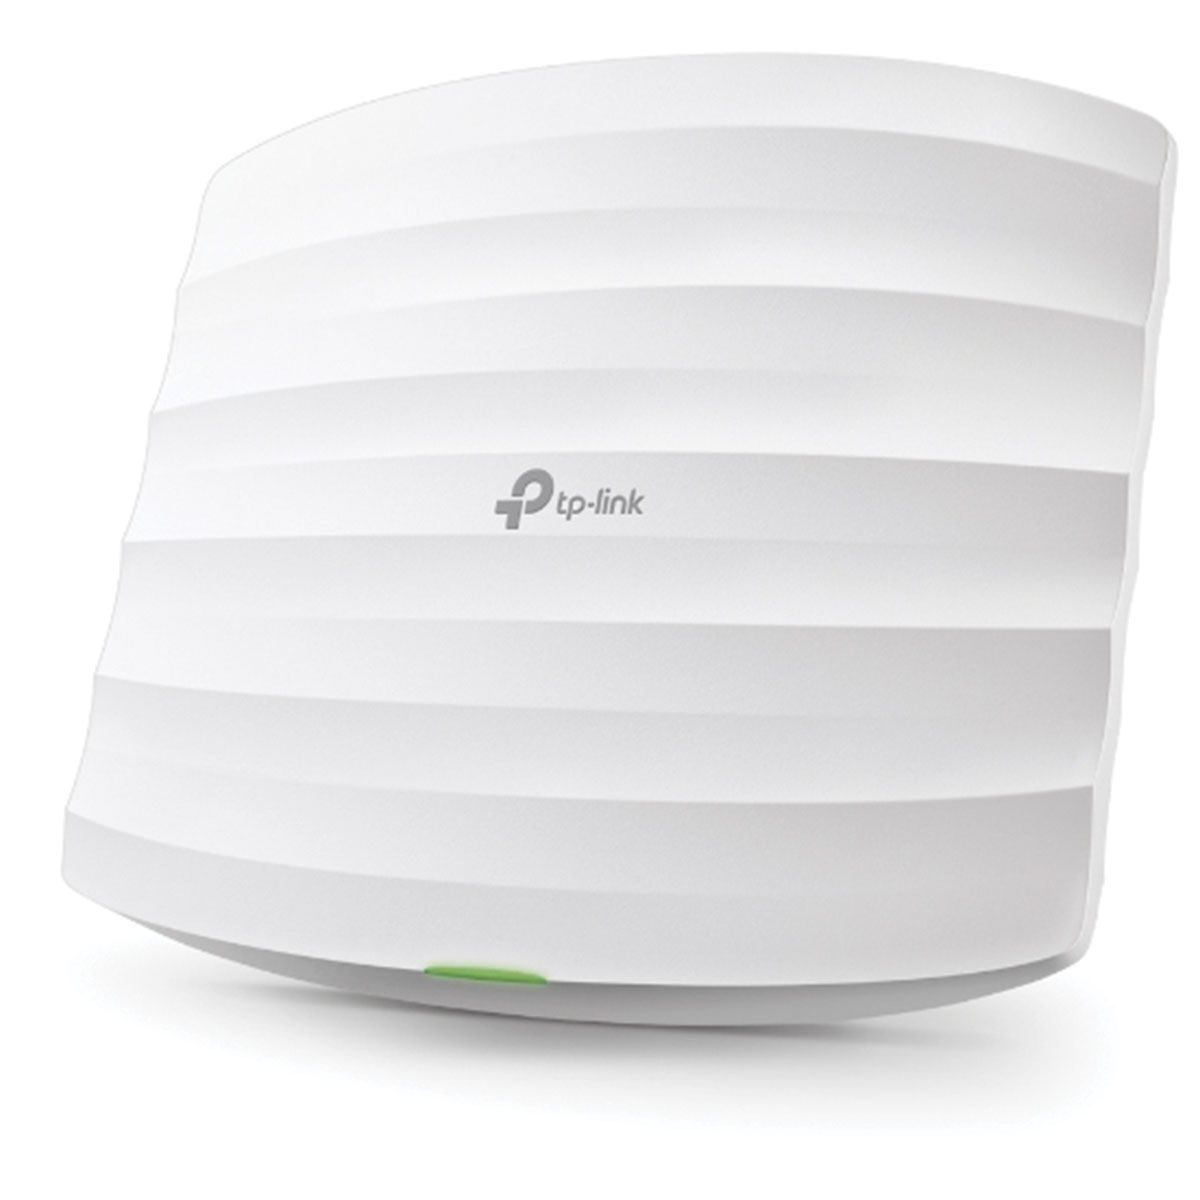 Access Point Wireless Gigabit MU-MIMO Montavel em Teto 2.4GHZ e 5GHZ AC1750 EAP245